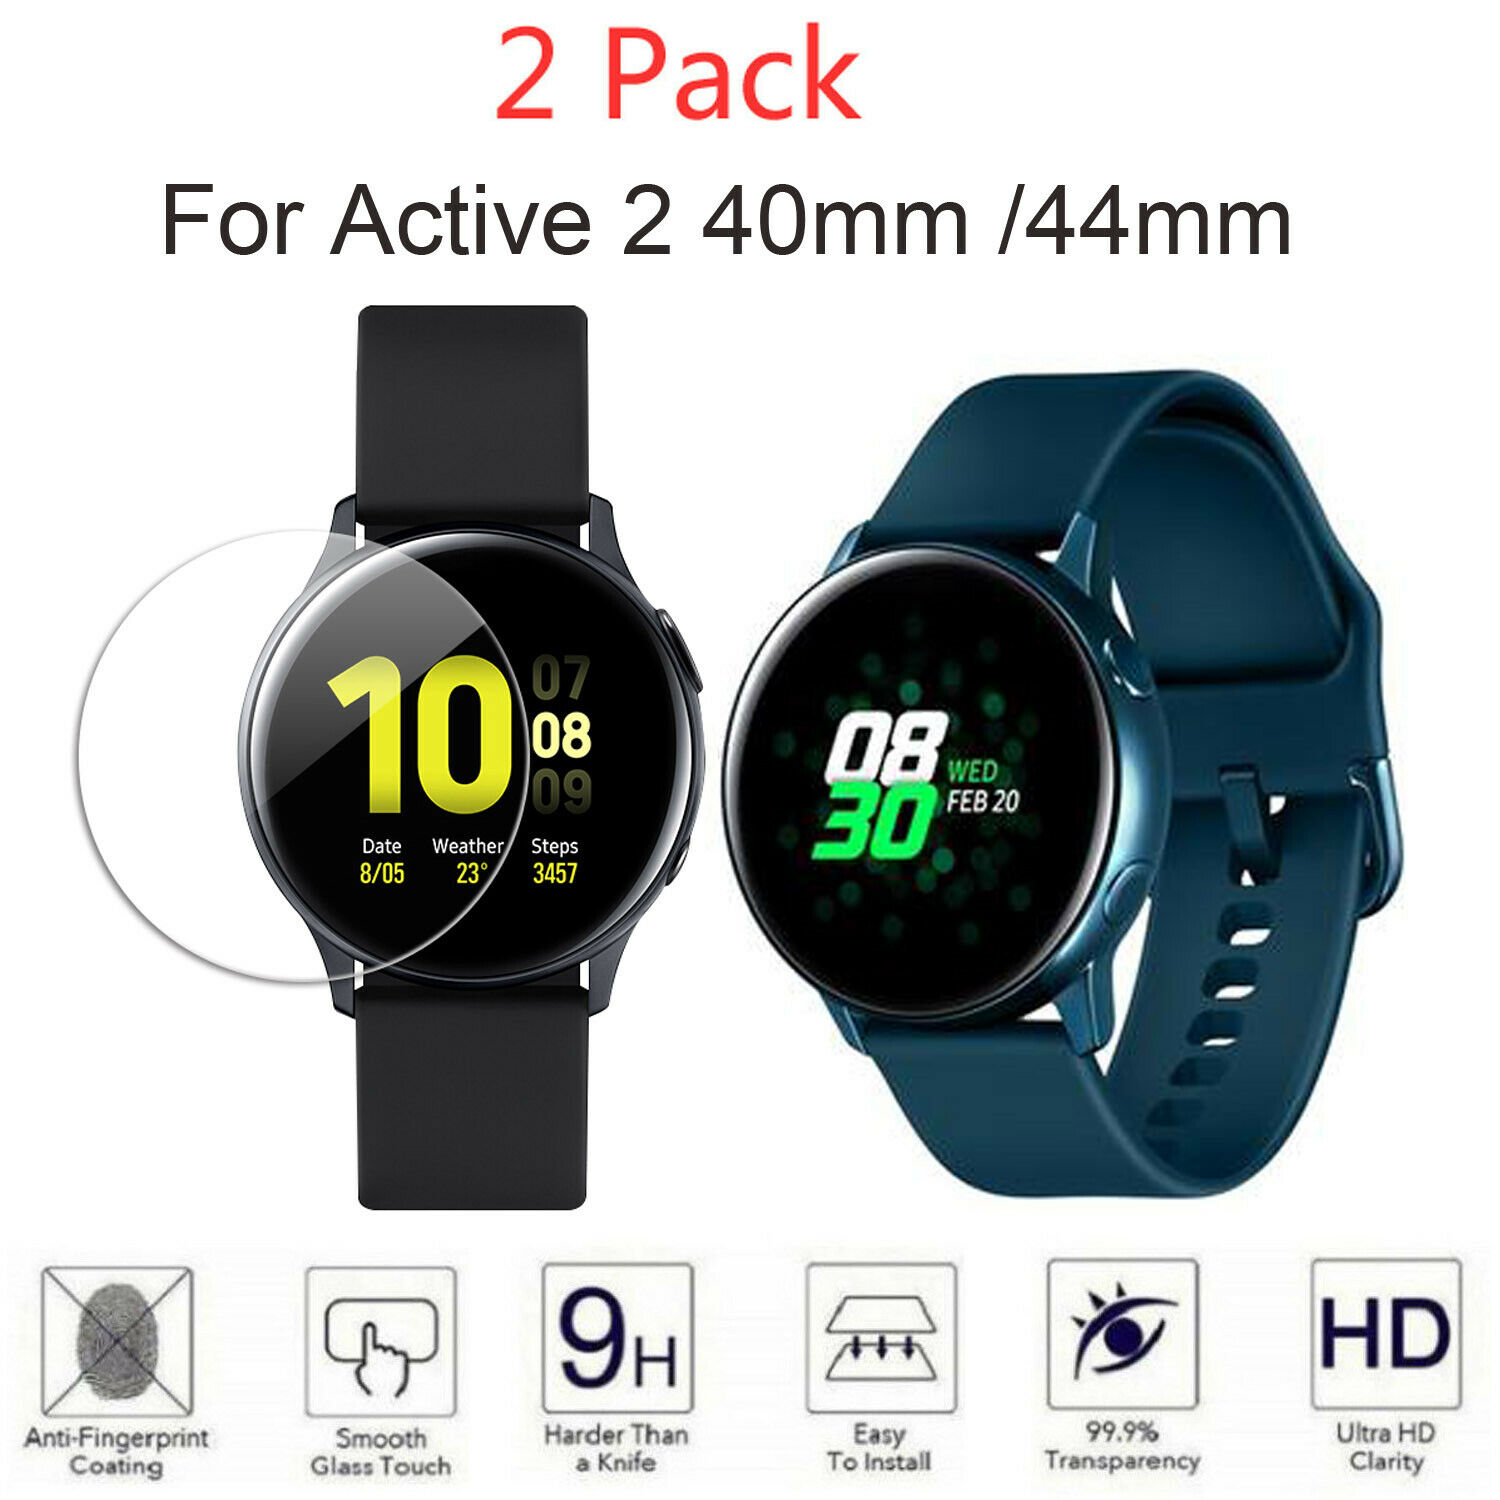 Screen-Protector-Film Tempered-Glass Active Galaxy Watch Samsung 44mm-Screen 2-40mm  title=